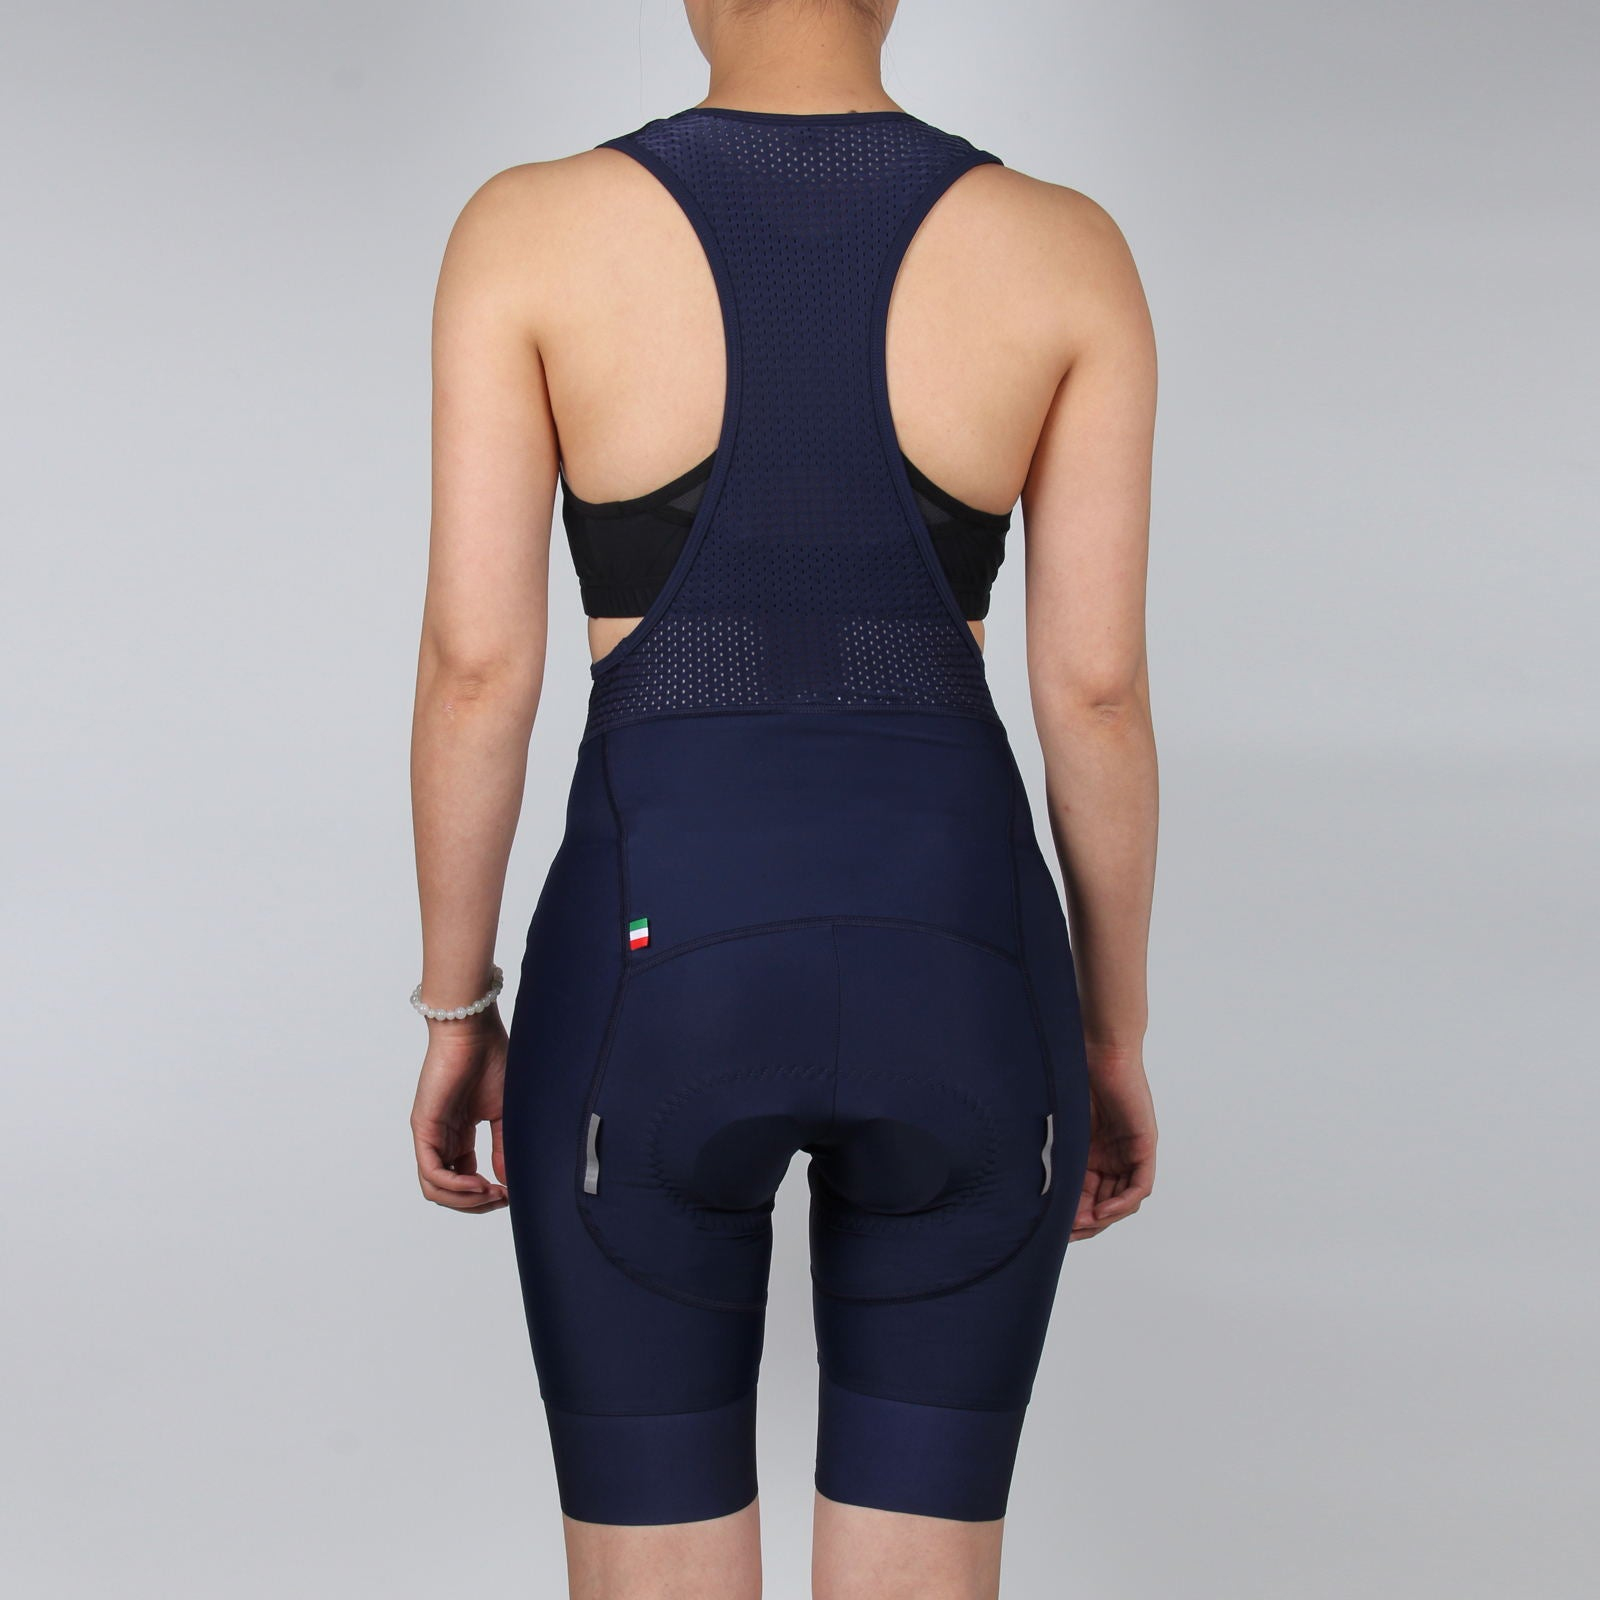 WOMEN Dark Navy Cycling Bib Shorts, with GLOSSY LOGO